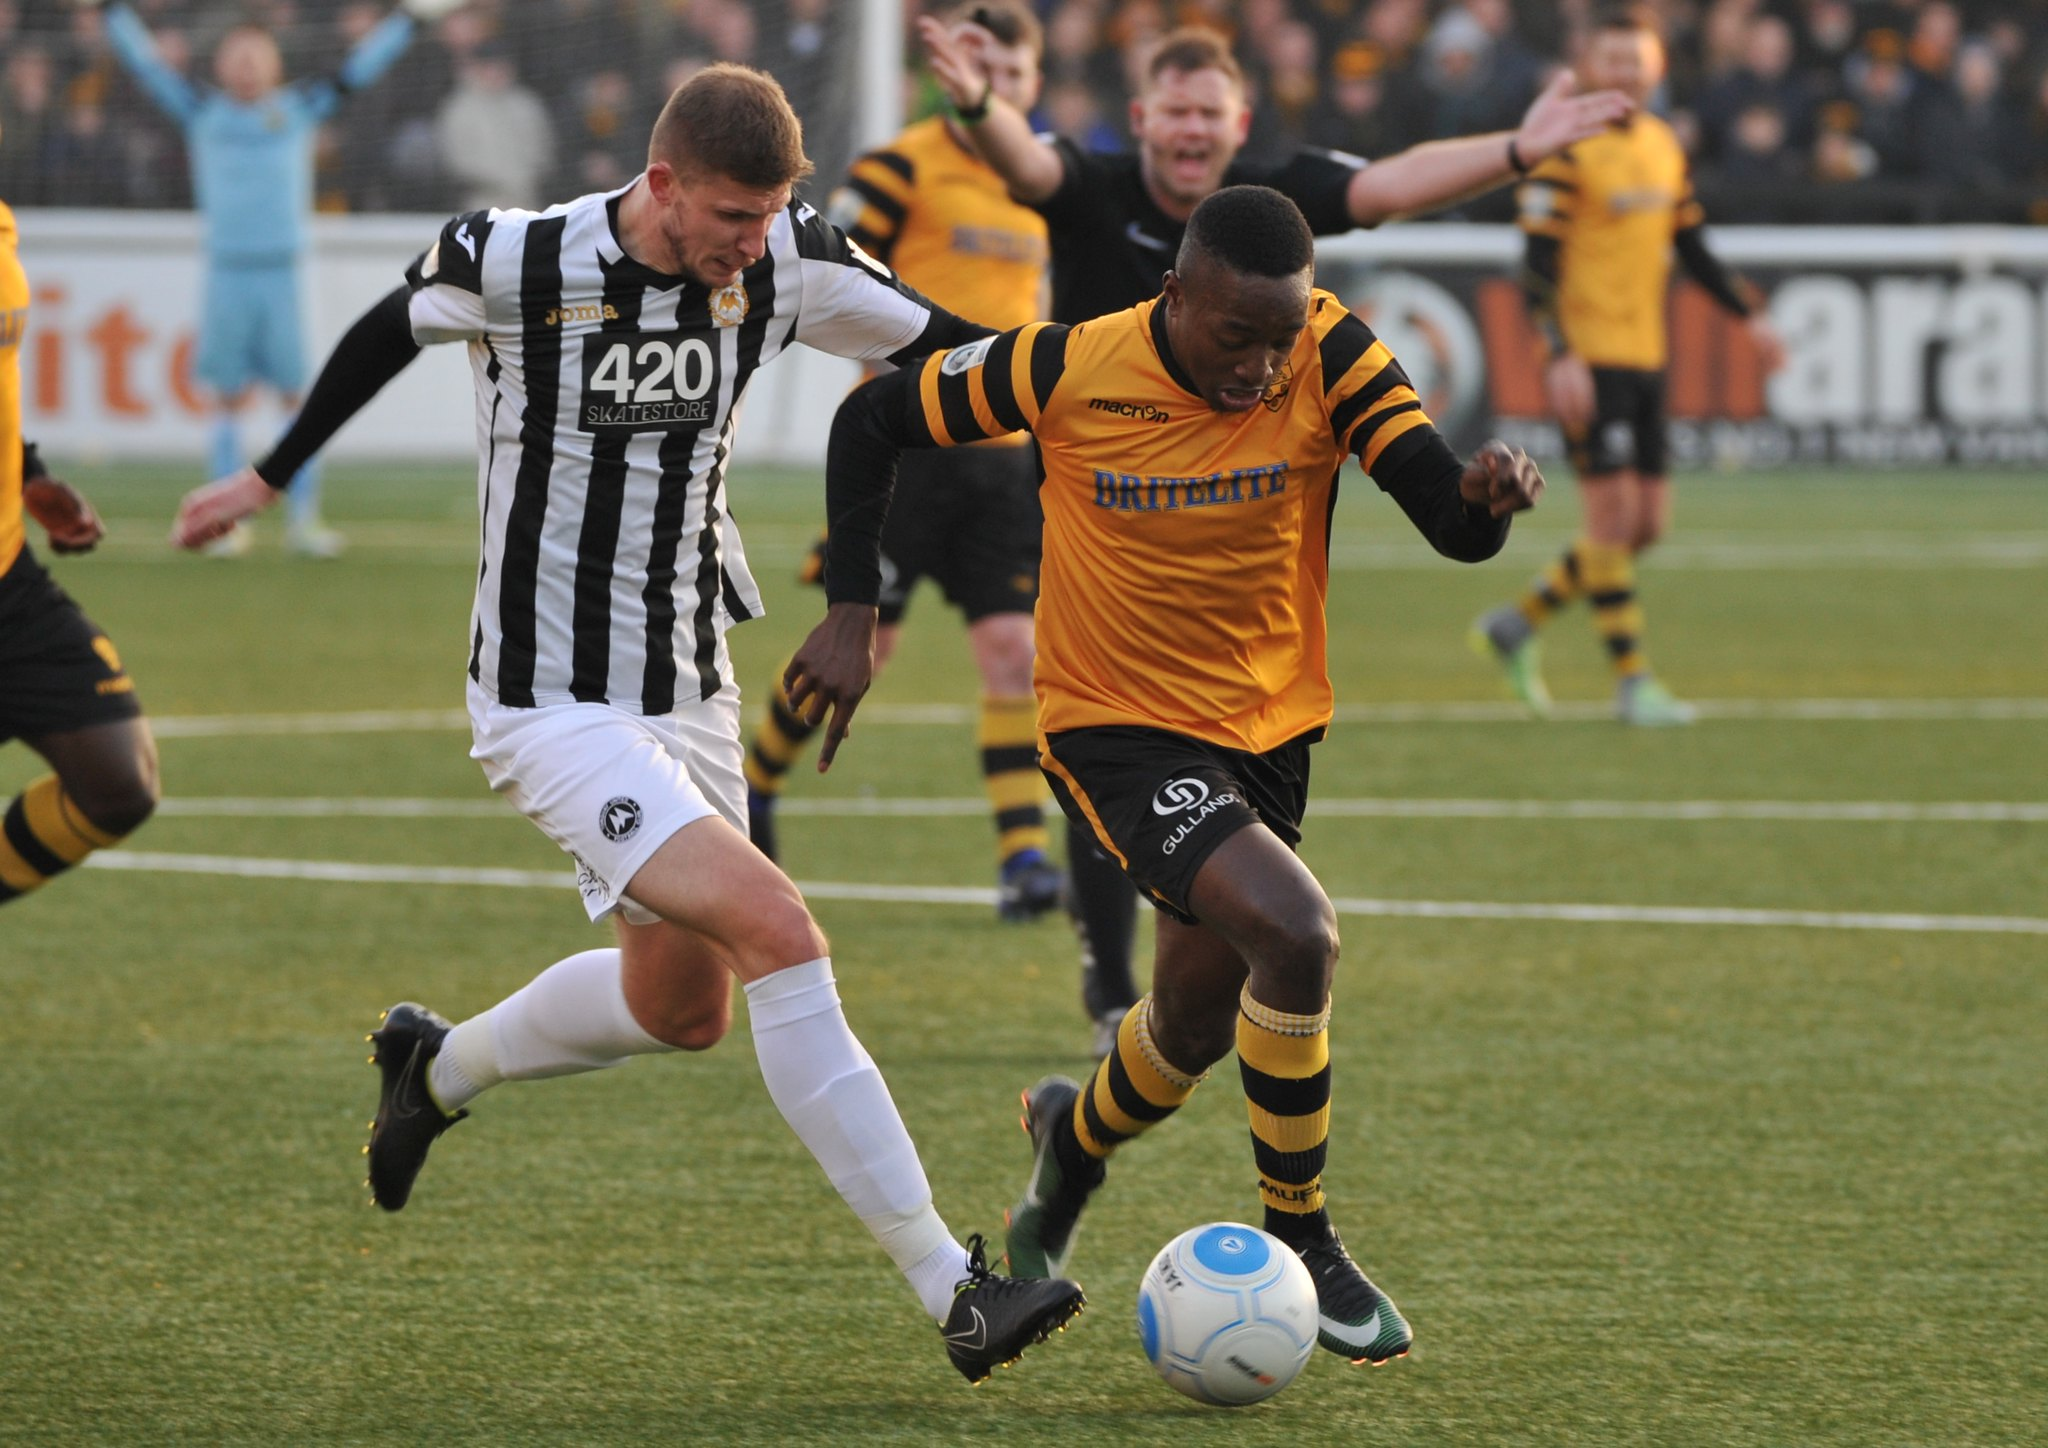 Maidstone United v Torquay United 227